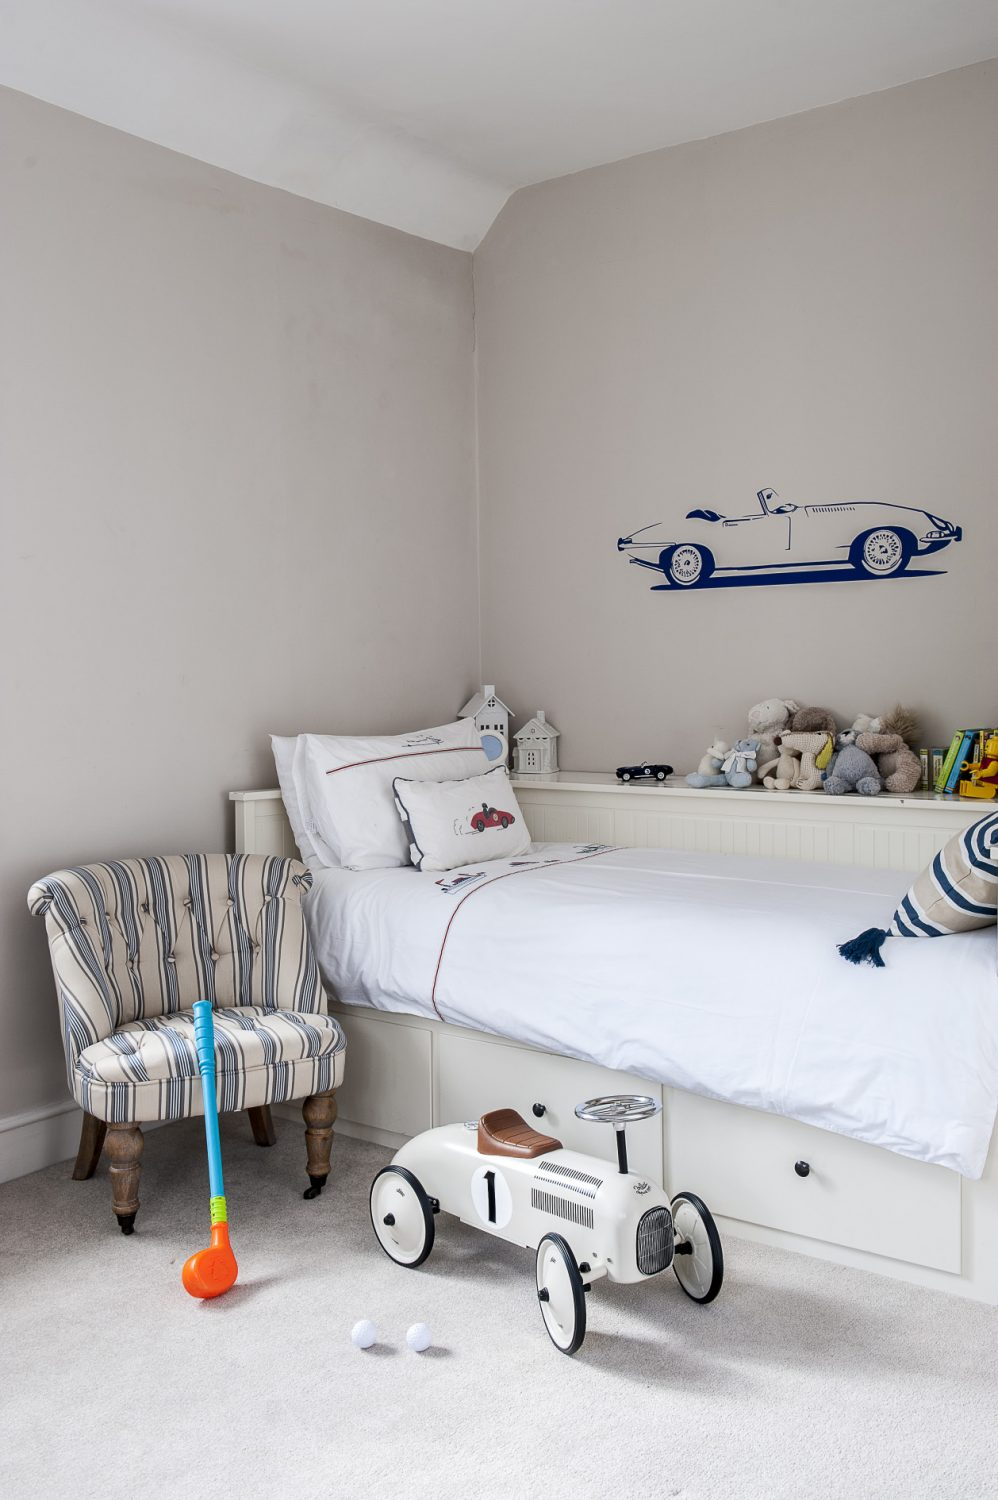 The couple's son's room is themed with his current favourites, including racing cars and sailing boats